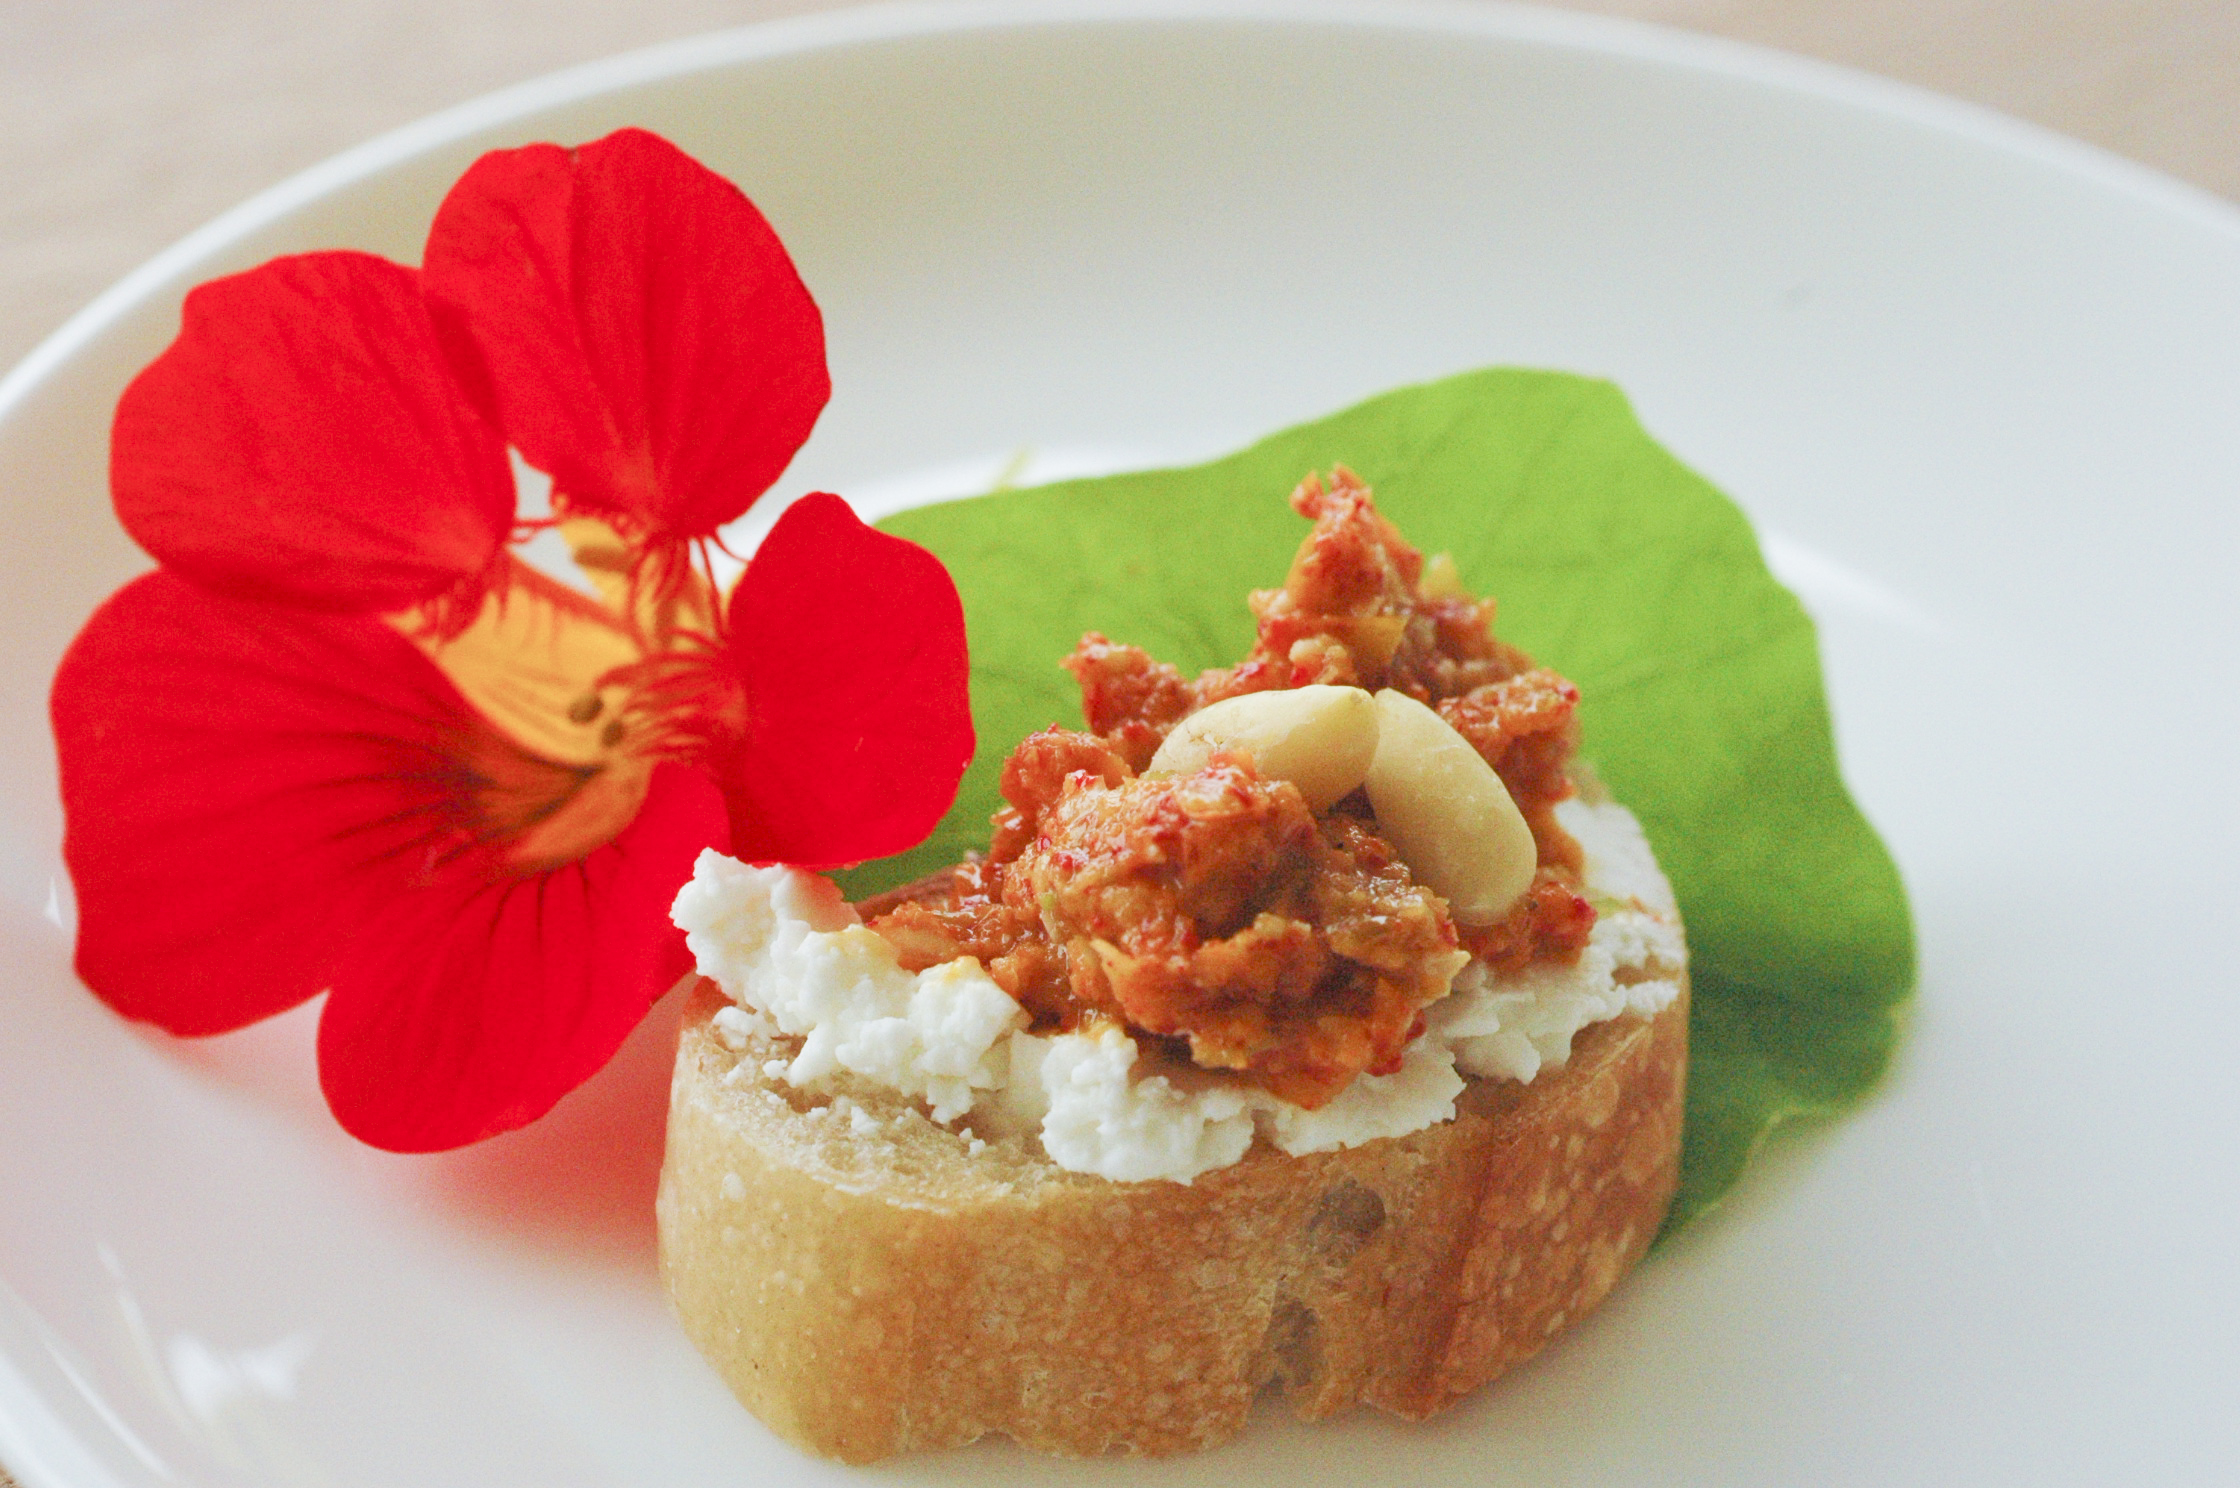 ... » Blog Archive » Nasturtium Pesto and Goat Cheese Crostini